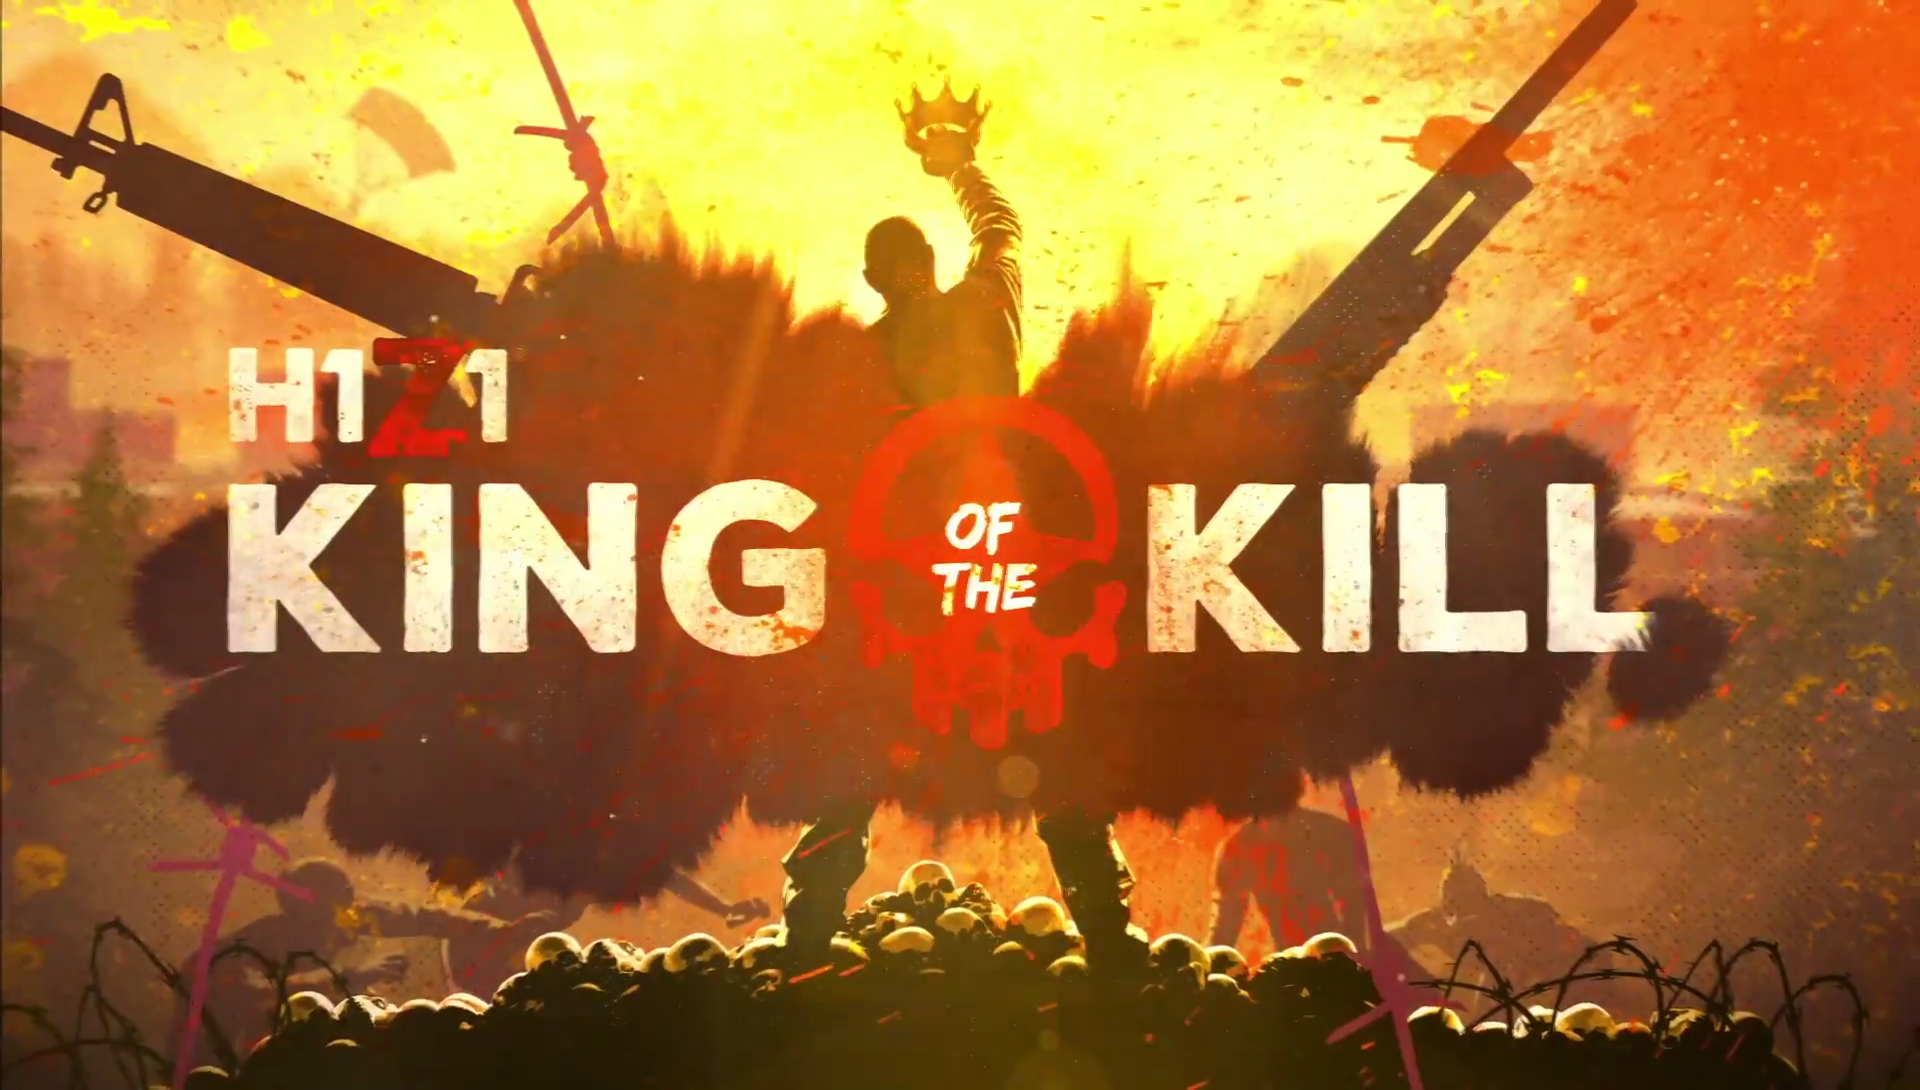 H1z1 king of the kill the ultimate show trailer gamersprey - H1z1 king of the kill xbox one ...